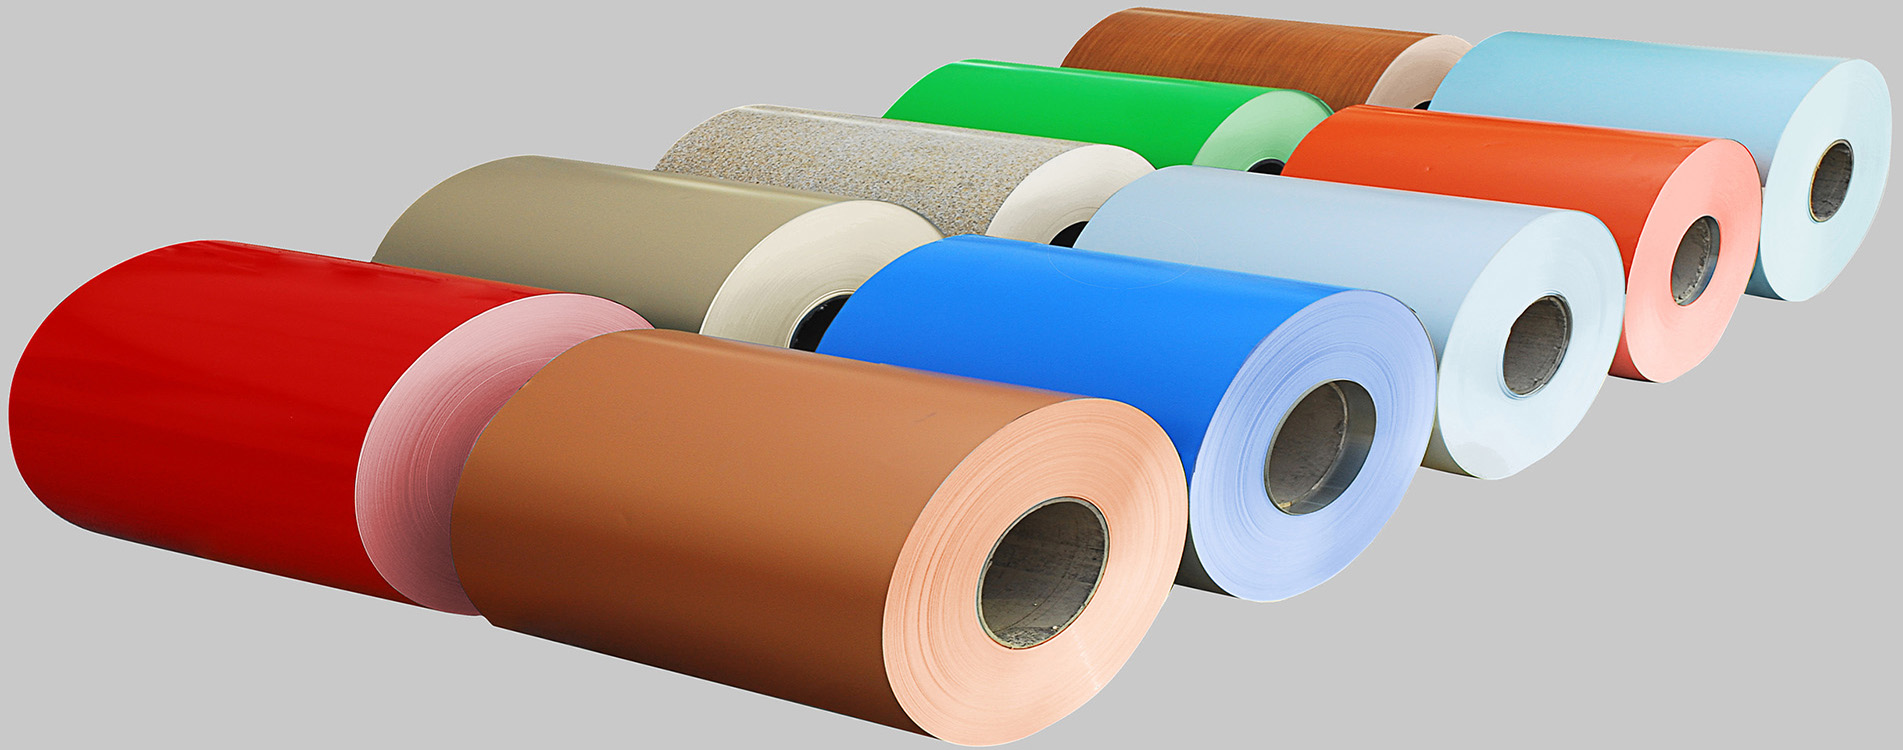 color coated aluminium coils/sheets supplier